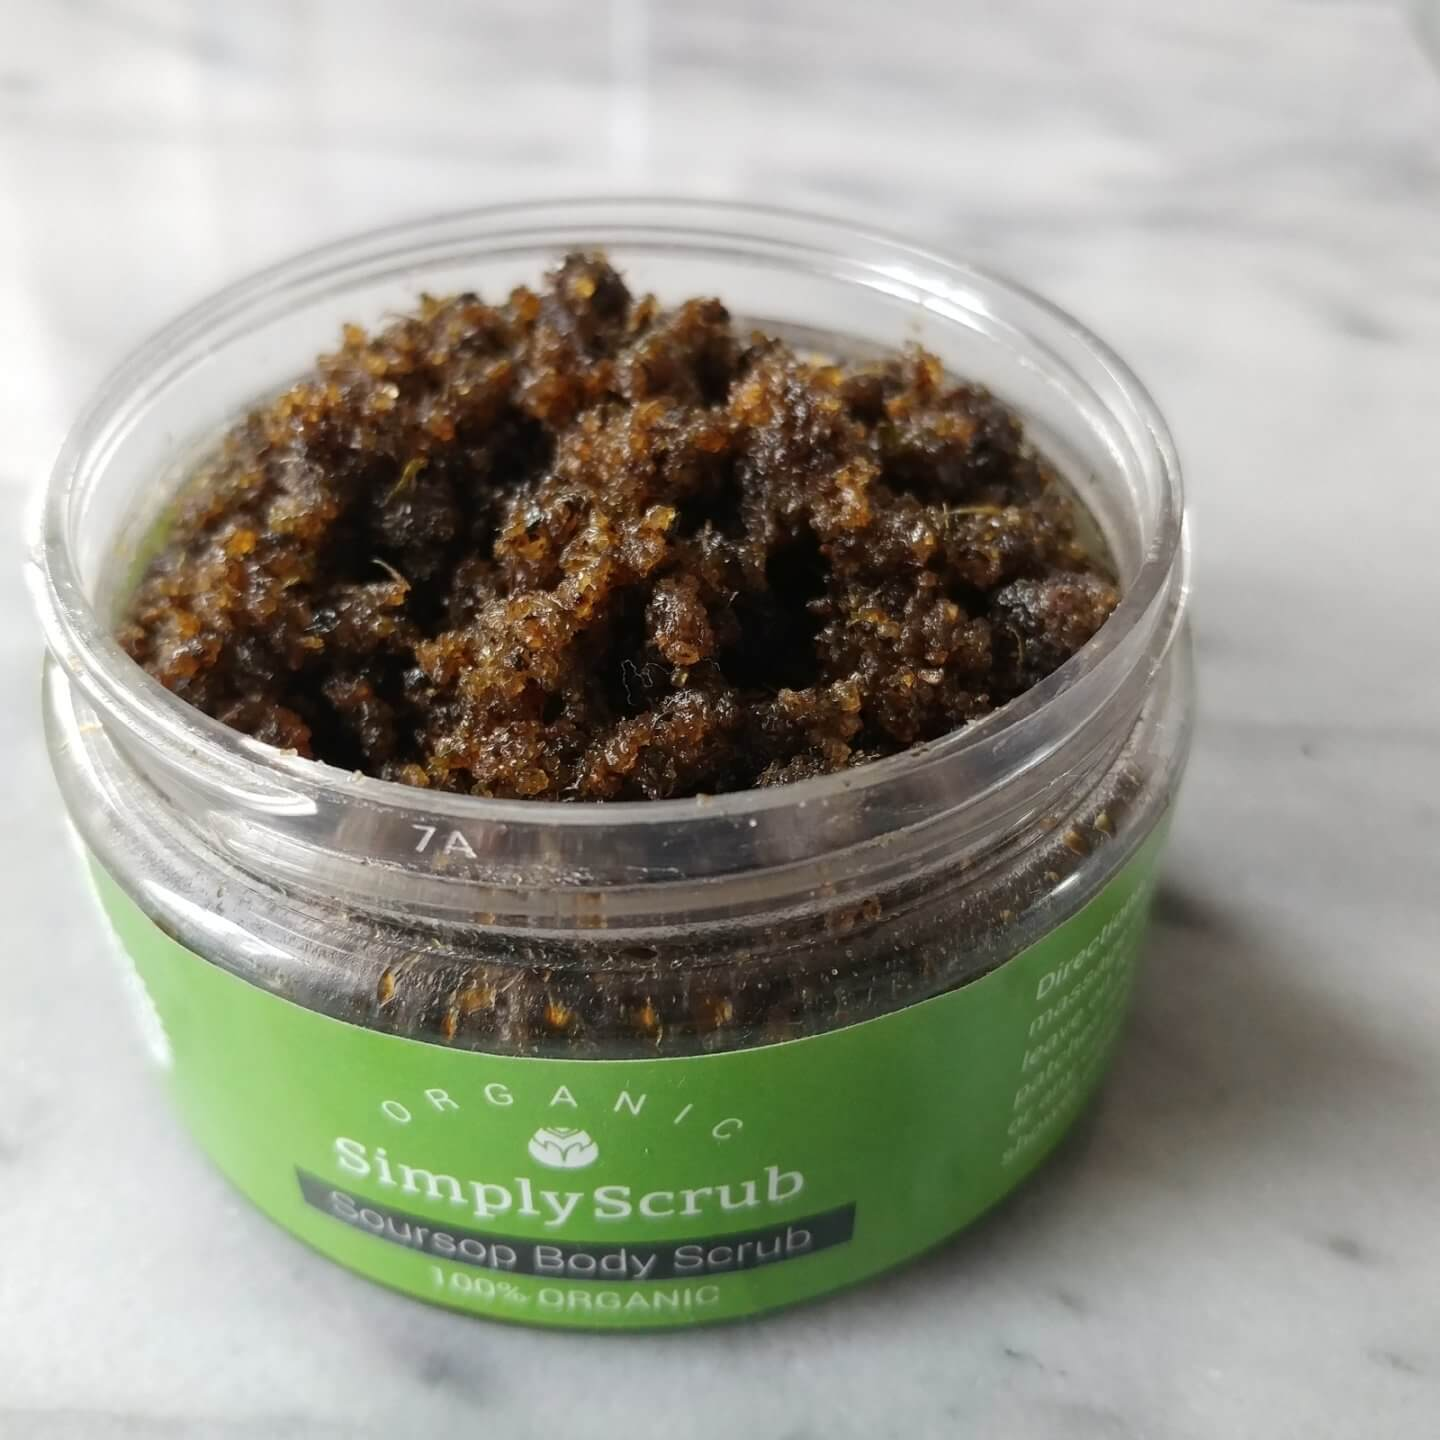 Go For The Big O! SimplyScrub Organic Body Scrub